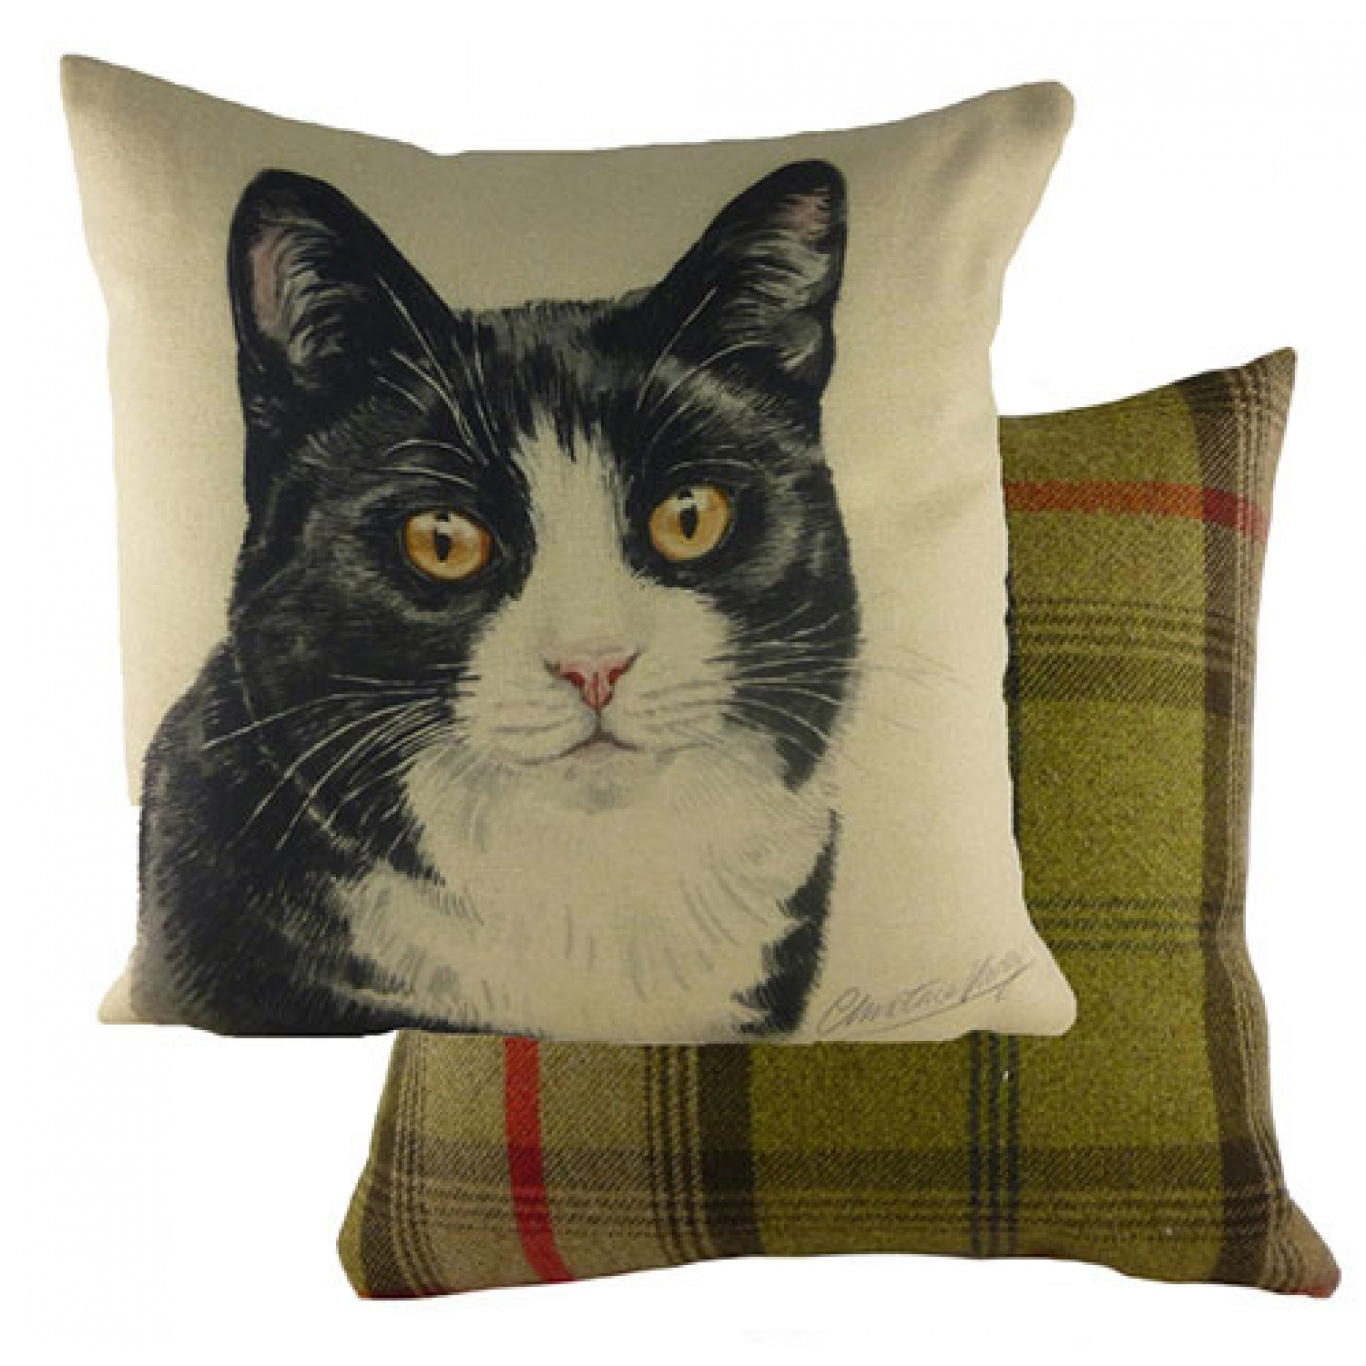 Image of Waggy Dogz Black & White Cat Cushion Cover